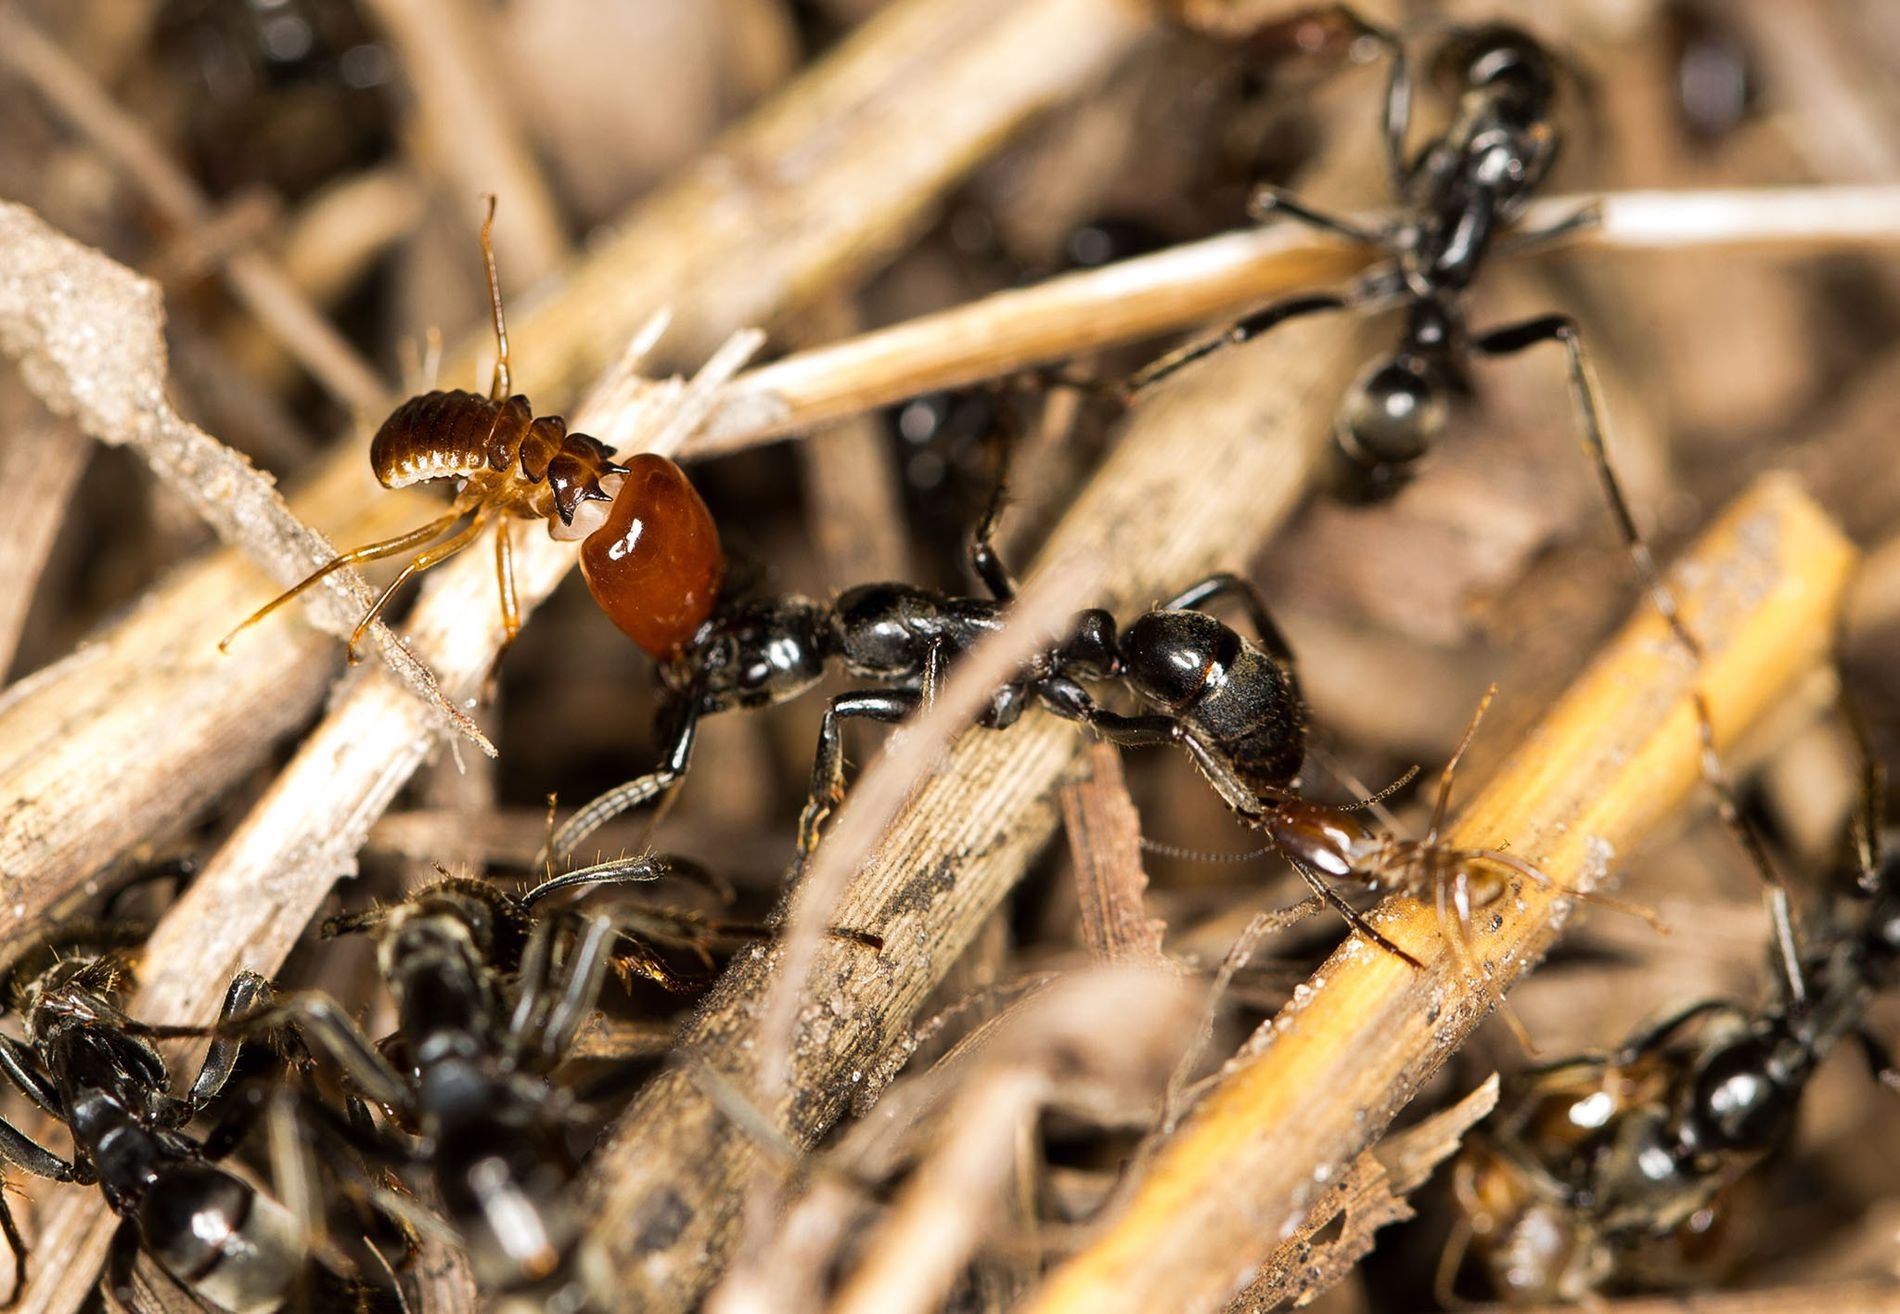 The ant in the middle has termite soldiers clinging to its head and hind leg during ...